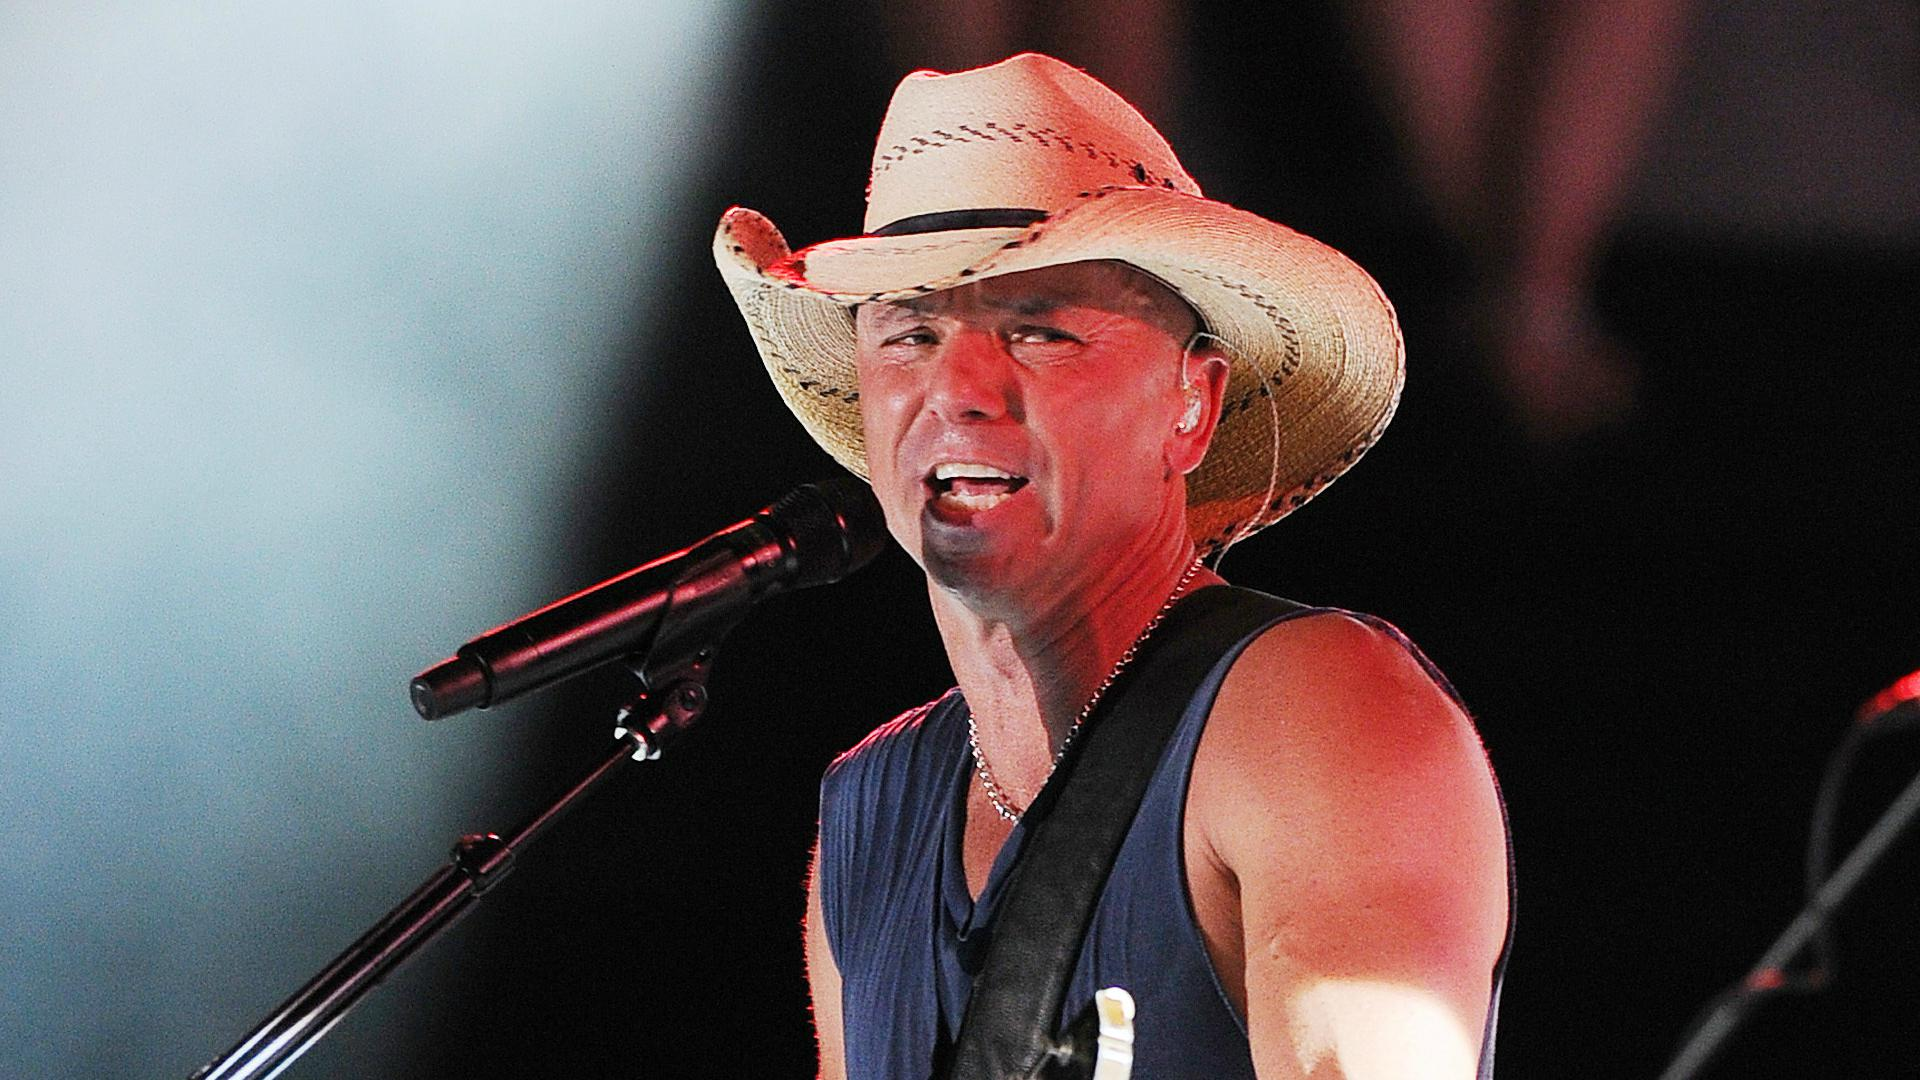 Kenny Chesney to country music: Stop objectifying women